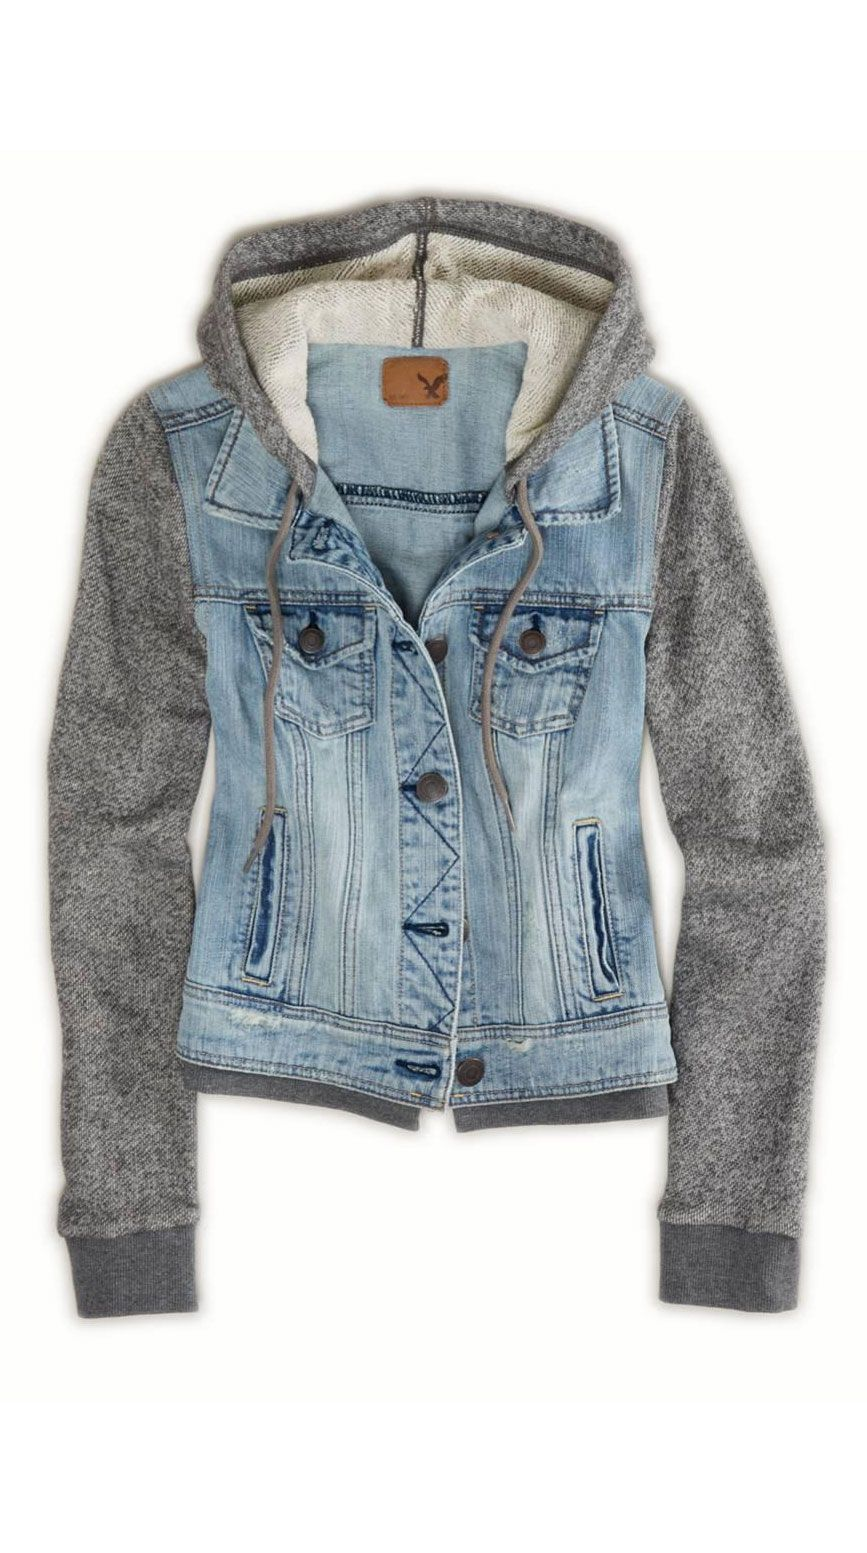 Look your best with Women's Denim Jackets from Kohl's. Women's Jean Jackets are perfect for your casual look. Kohl's offers many different styles and types of women's jean jackets, like plus size denim jackets, Women's Levi's denim jackets, and junior's denim jackets.